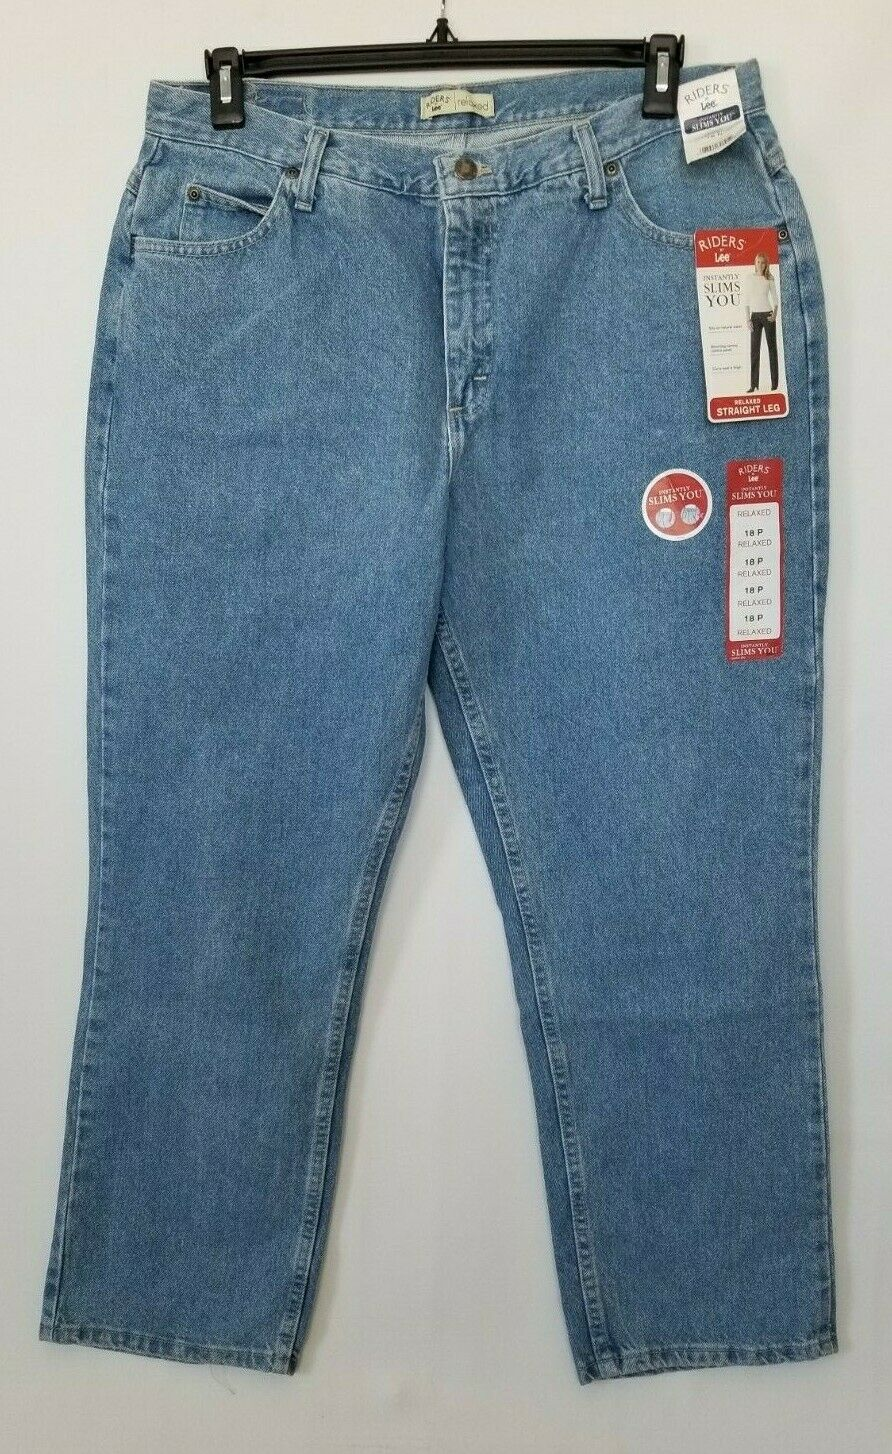 Lee Riders Jeans Relaxed Fit Straight Leg Womens Classic Stone Slimming Size 18P